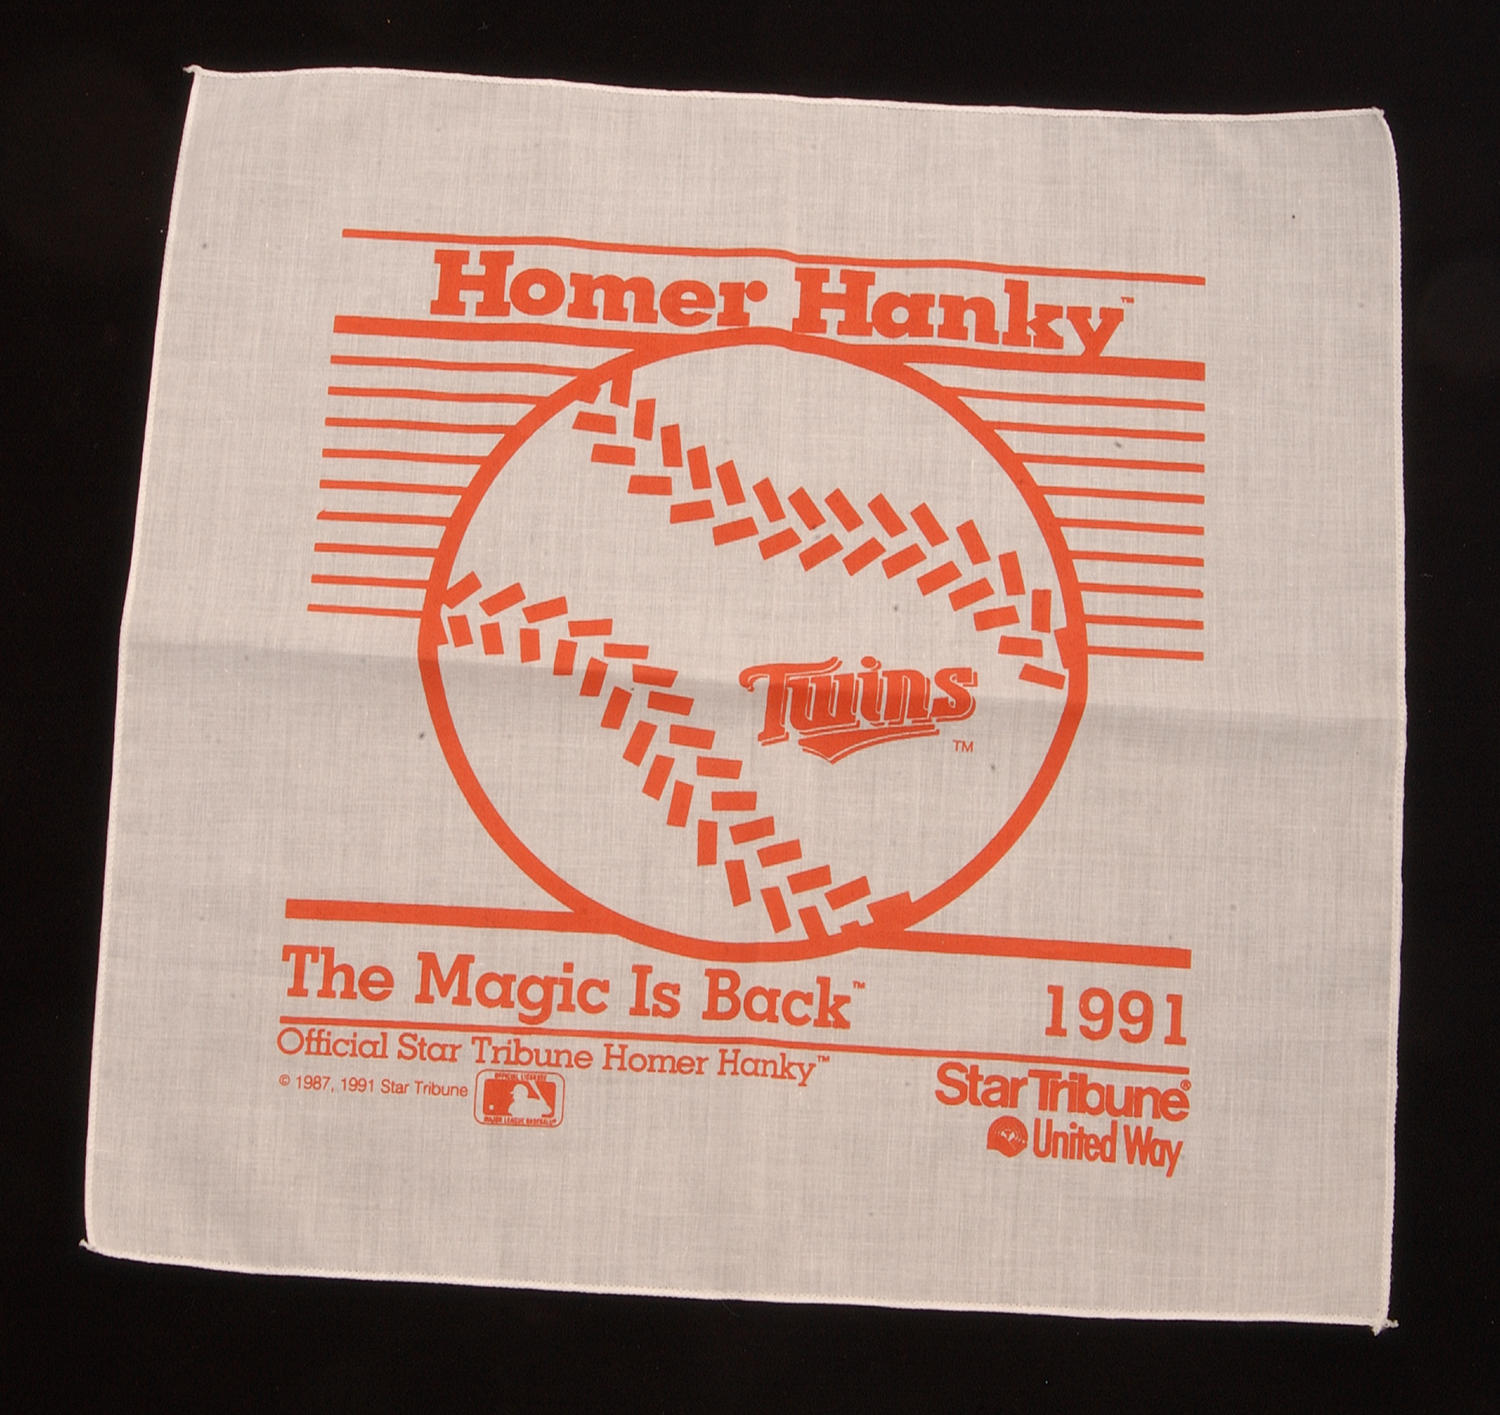 """A Minnesota Twins 'Homer Hanky', handed out by the Minneapolis Star-Tribune during the ALCS and the 1991 World Series. <a href=""""http://collection.baseballhall.org/islandora/object/islandora%3A262585"""">PASTIME</a> (Milo Stewart Jr. / National Baseball Hall of Fame)"""